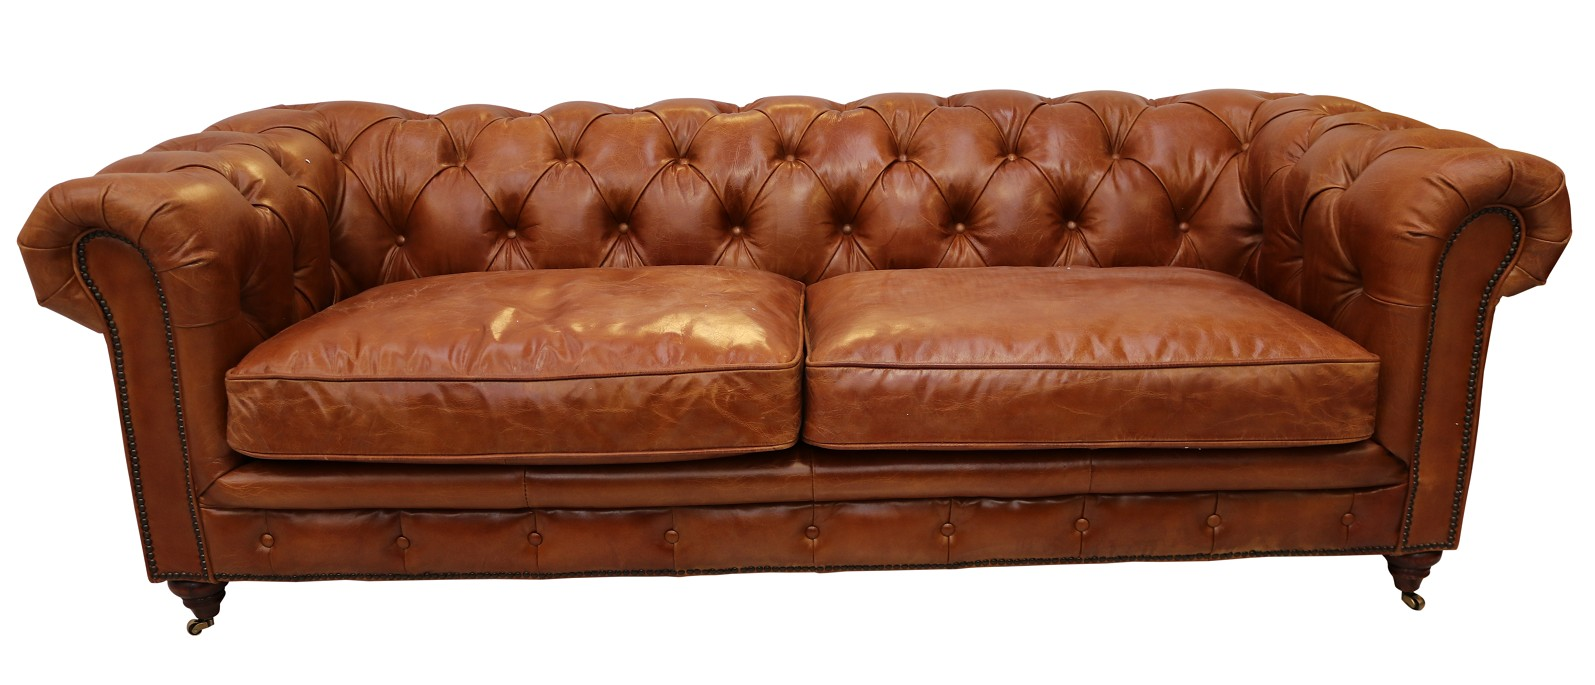 Leather-based Chesterfield Couch